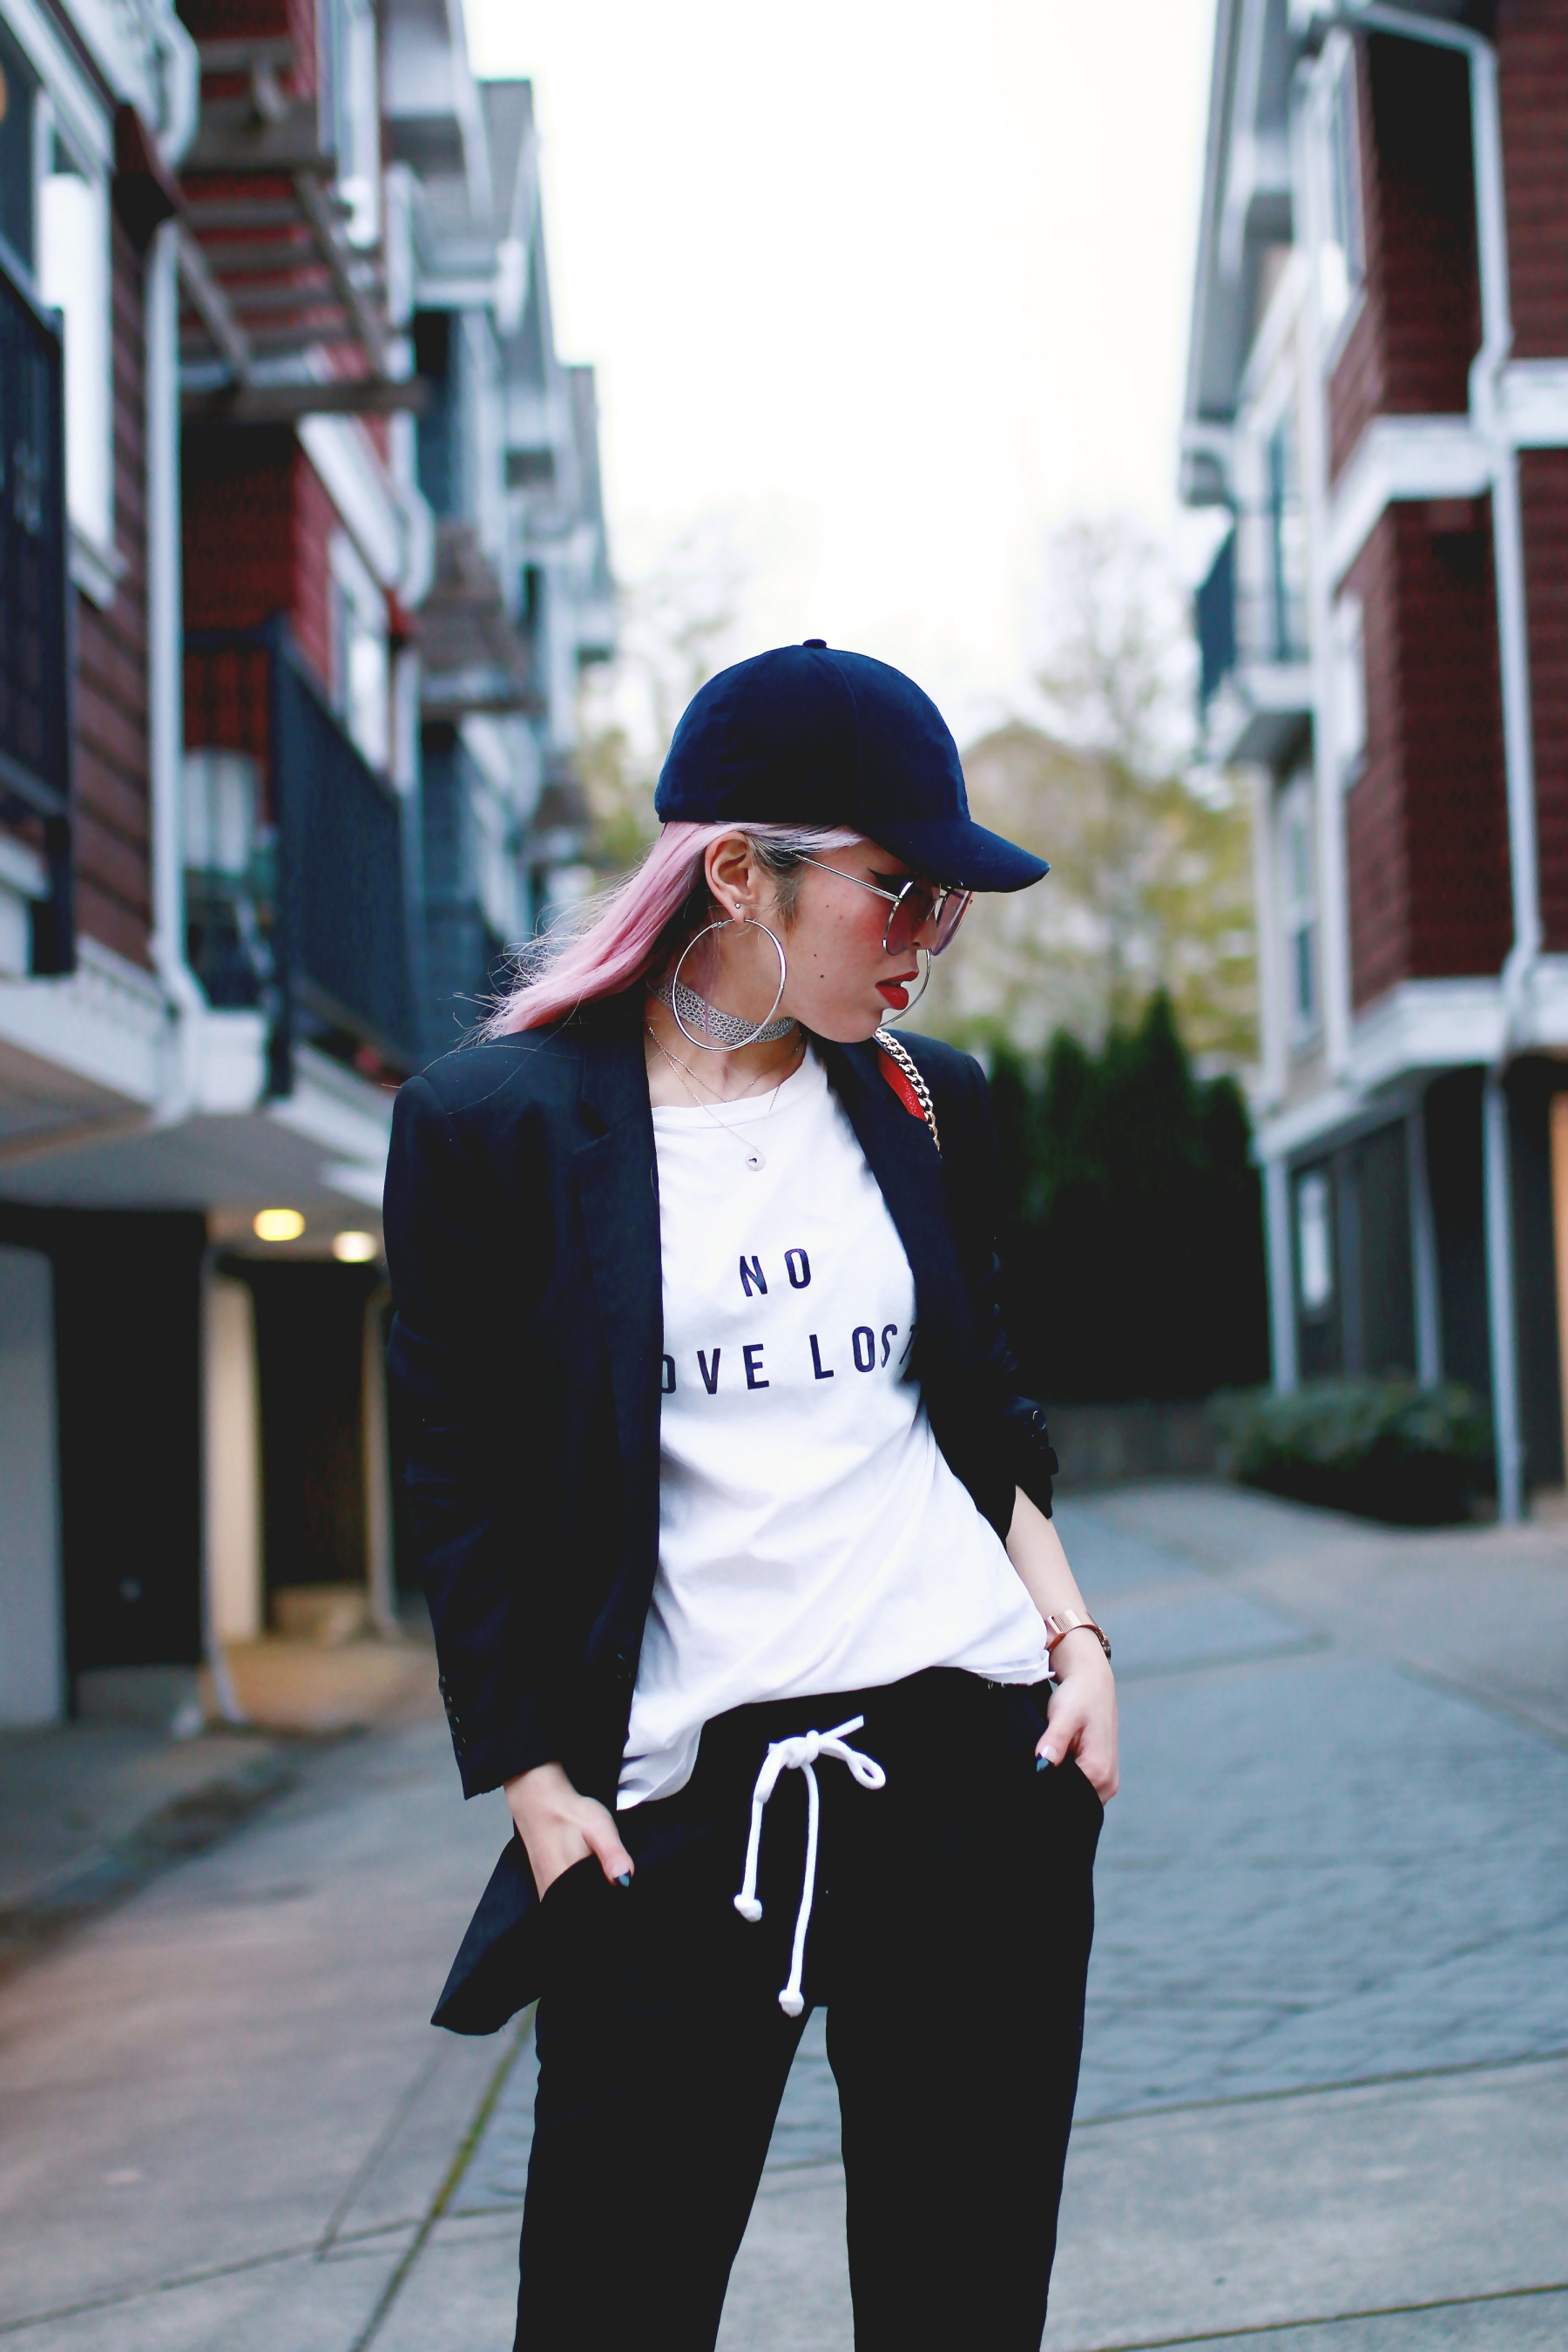 H&M Baseball Cap_Shop Sincerely Jules No LOVE LOST Tee_H&M Sweatpants_YSL Boyfriend Blazer_Zara Choker_Forever 21 Hoop Earrings_Mellow World Red Bag_Charlotte Russe Nude Sandals_L'Oreal Red Lipstick_Aikas Love Closet_Seattle Fashion Style Blogger_Pink Hair 8